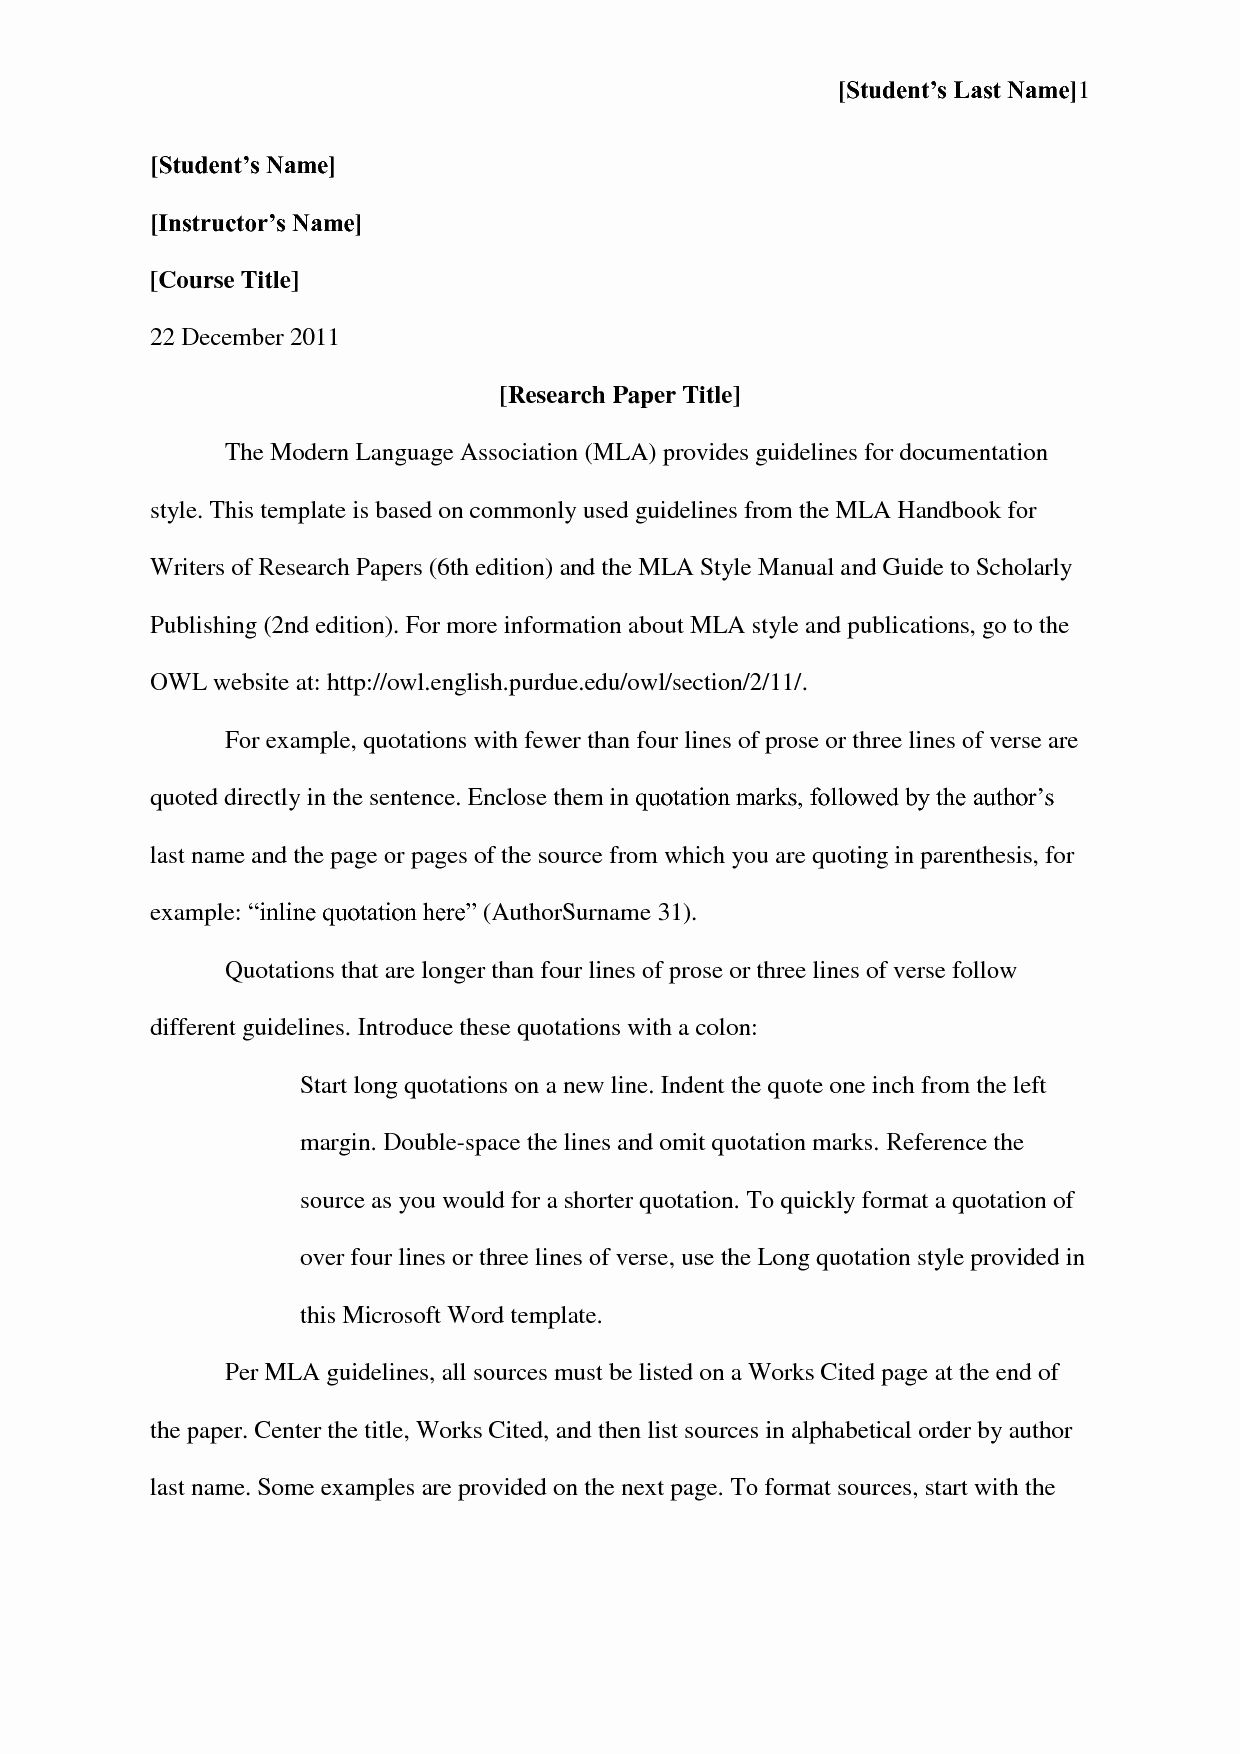 012 Mla Title Page Template Awesome Format Works Cited Scarlet Letter Best Of Apa Style Essay Research Impressive Reference Example Generator Sample Full